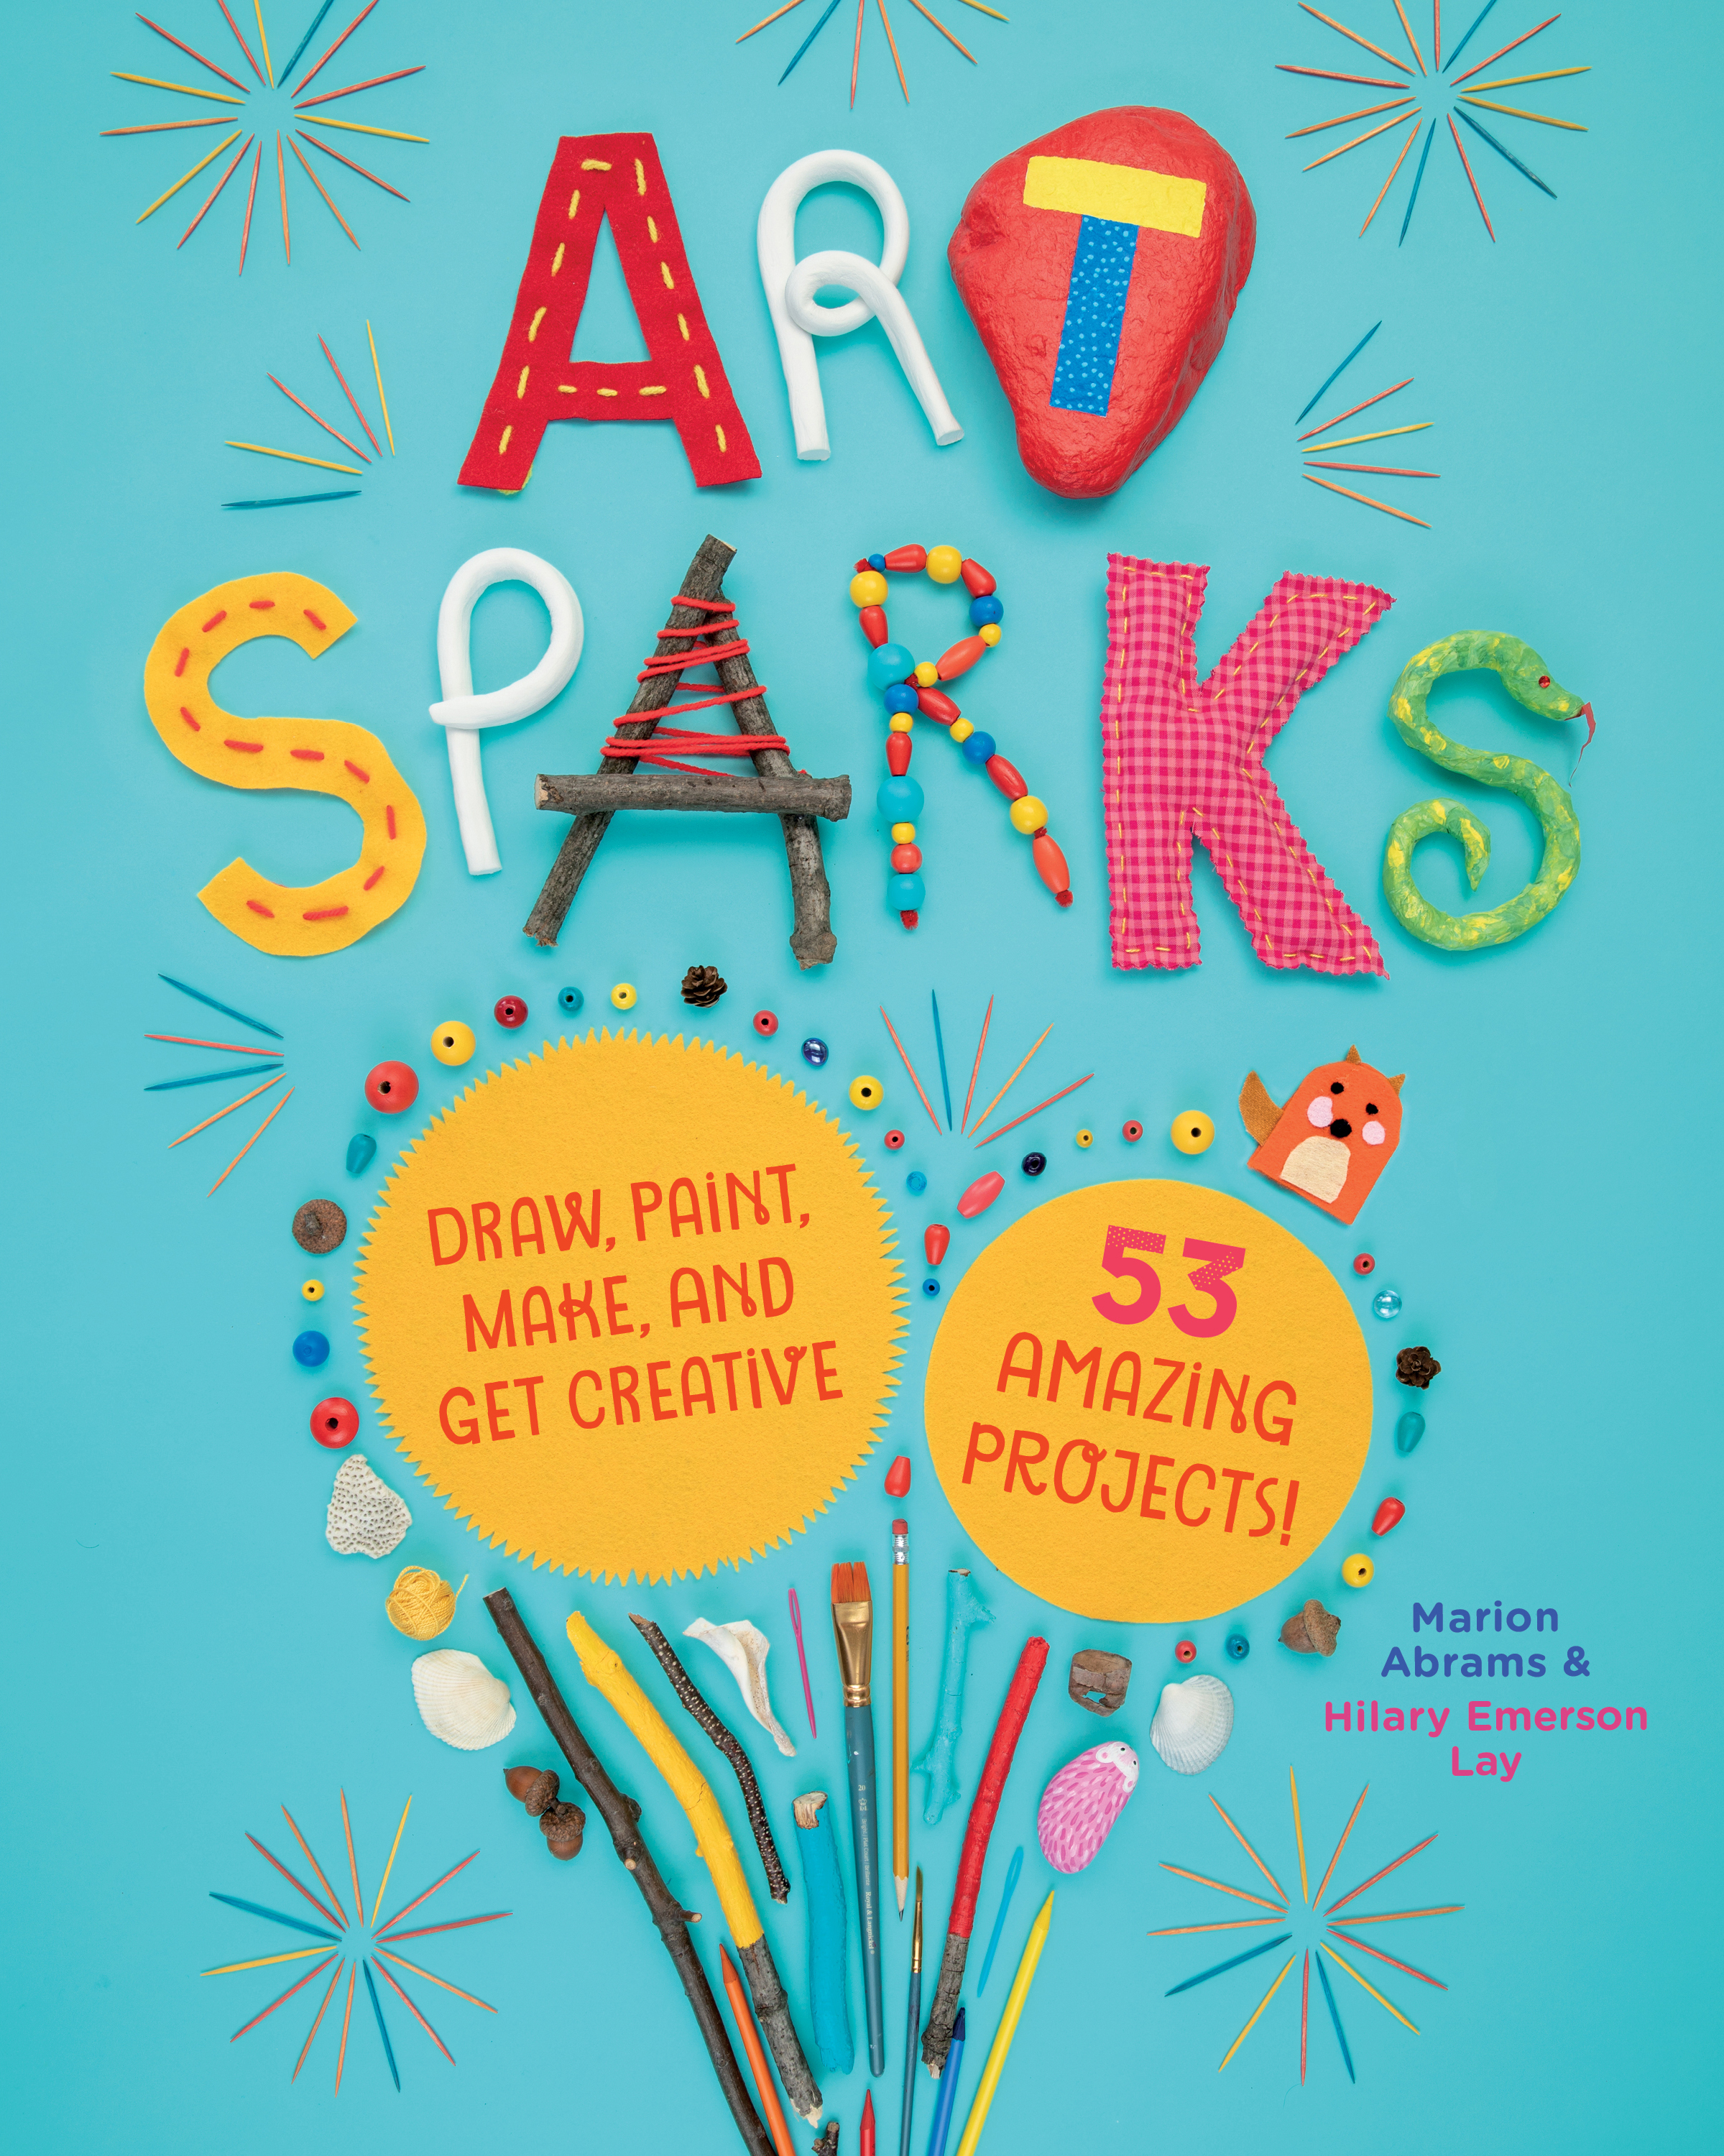 Art Sparks Draw, Paint, Make, and Get Creative with 53 Amazing Projects! - Marion Abrams